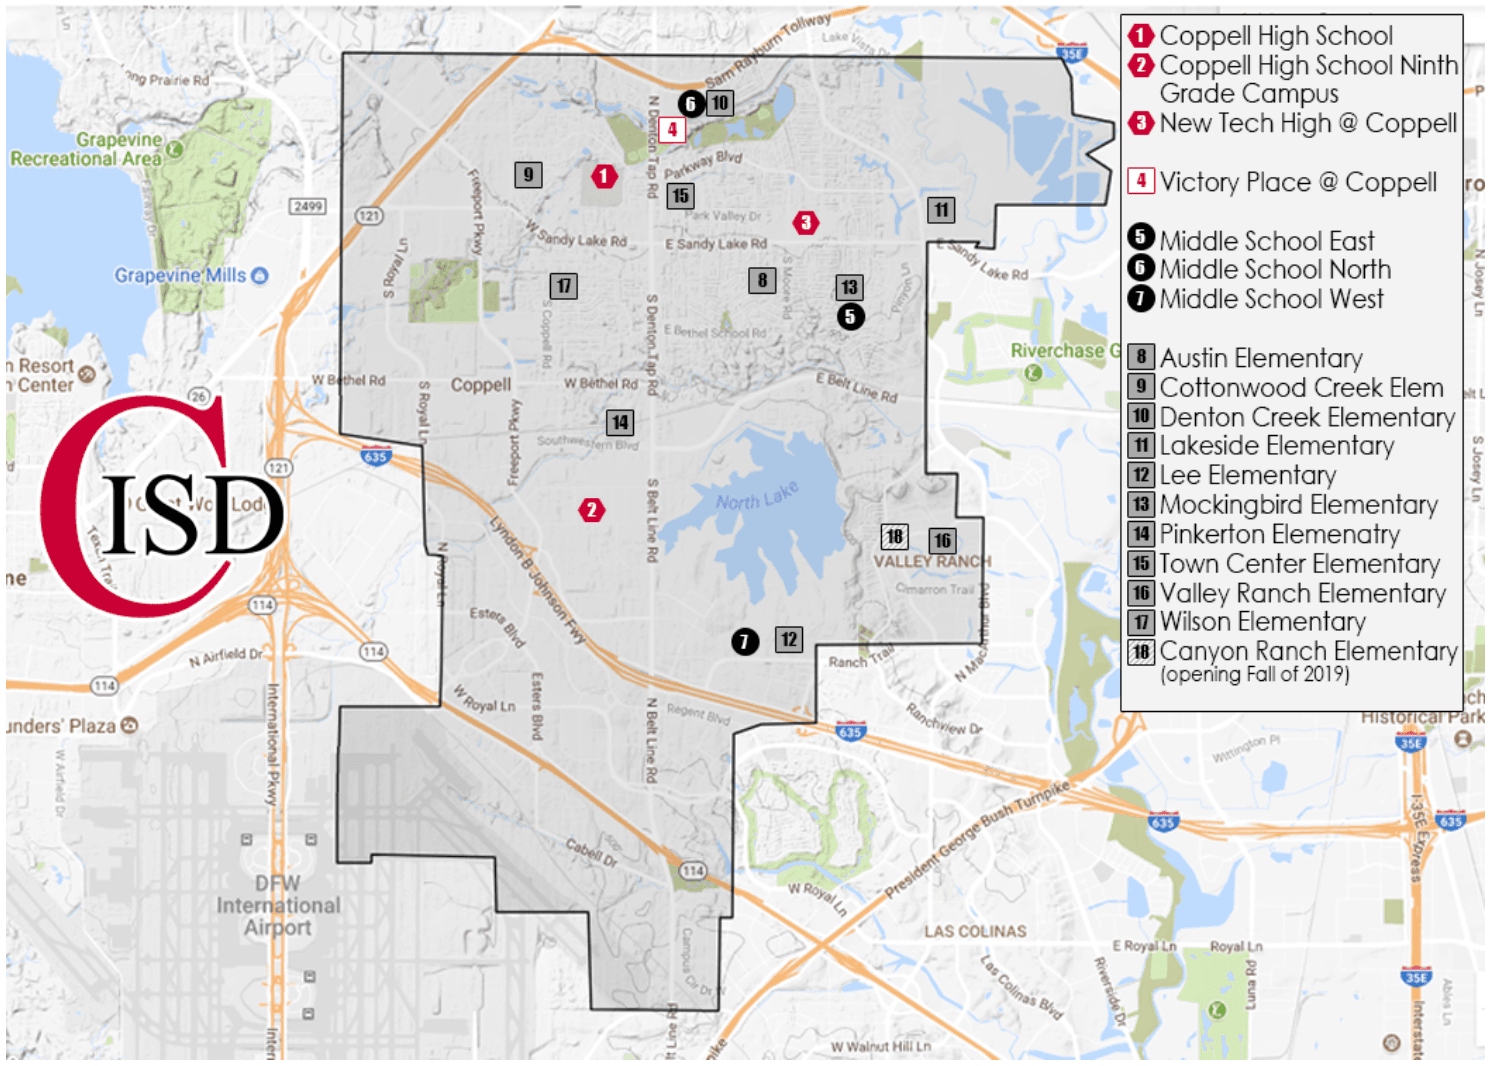 Coppell Independent School District Boundary Map